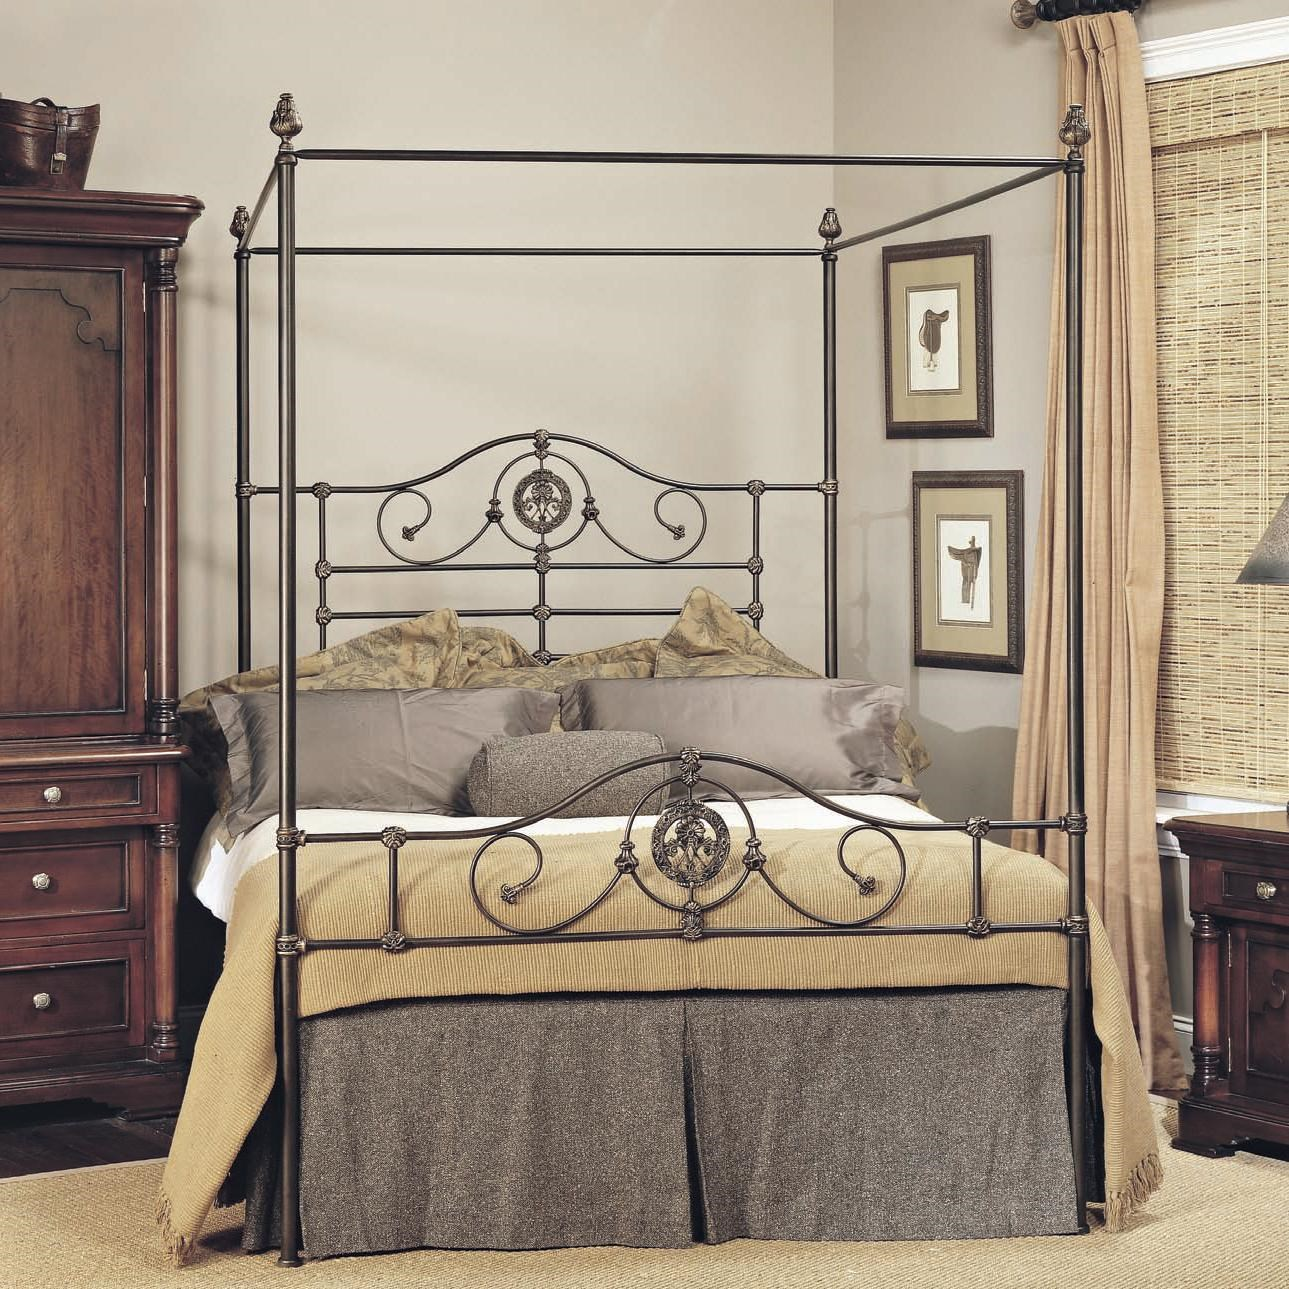 Old Biscayne Designs Custom Design Iron and Metal Beds Roget Metal Canopy Bed | Jacksonville Furniture Mart | Canopy Beds  sc 1 st  Jacksonville Furniture Mart & Old Biscayne Designs Custom Design Iron and Metal Beds Roget Metal ...